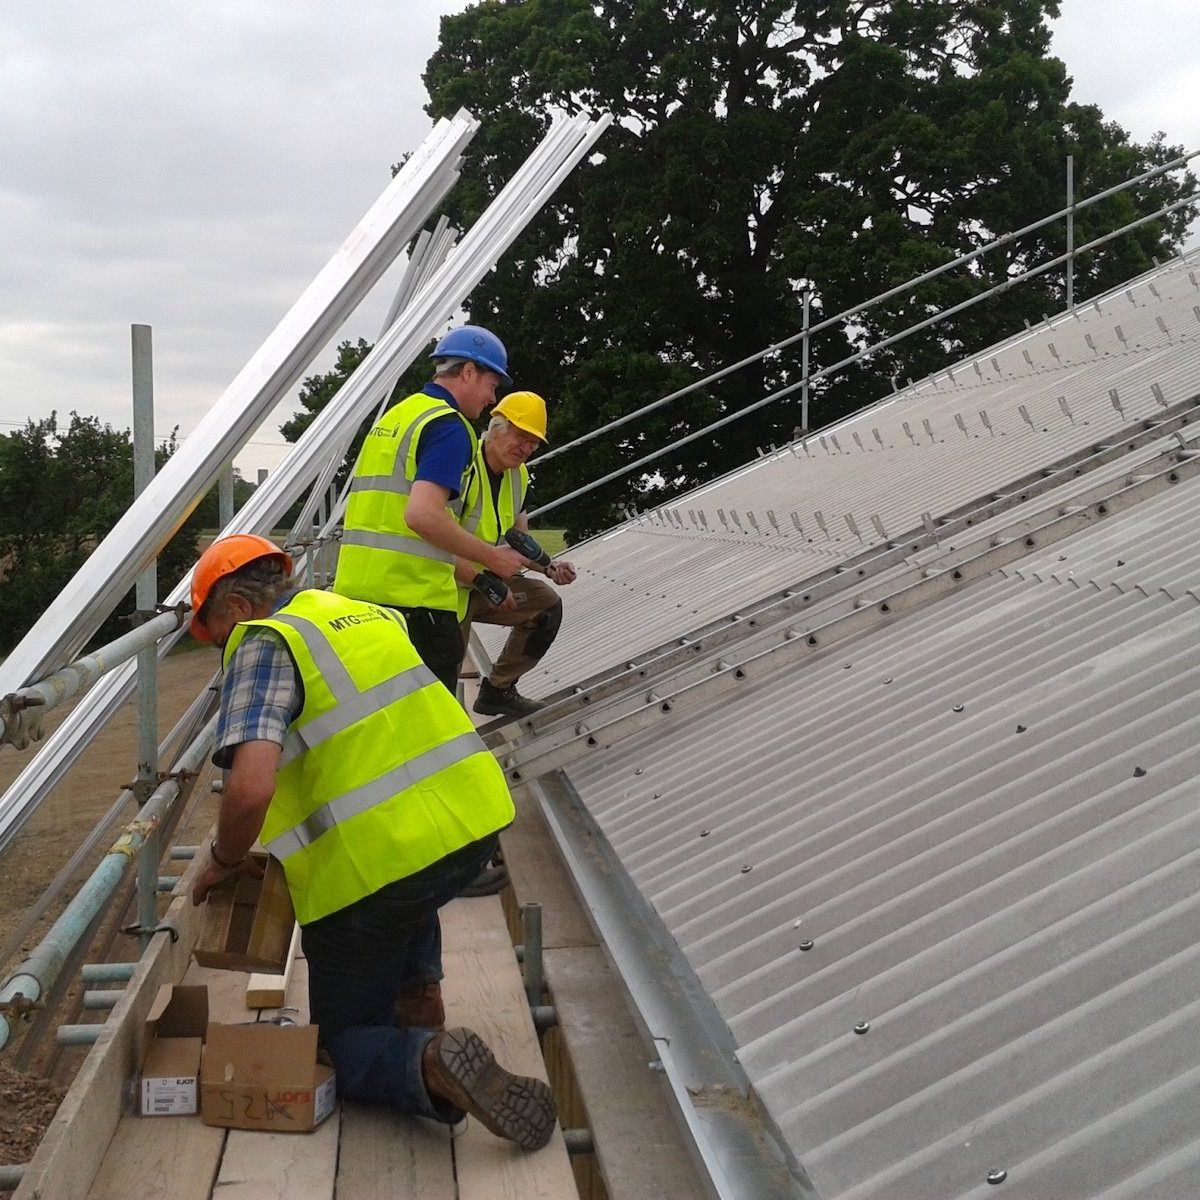 Three Installers on a roof